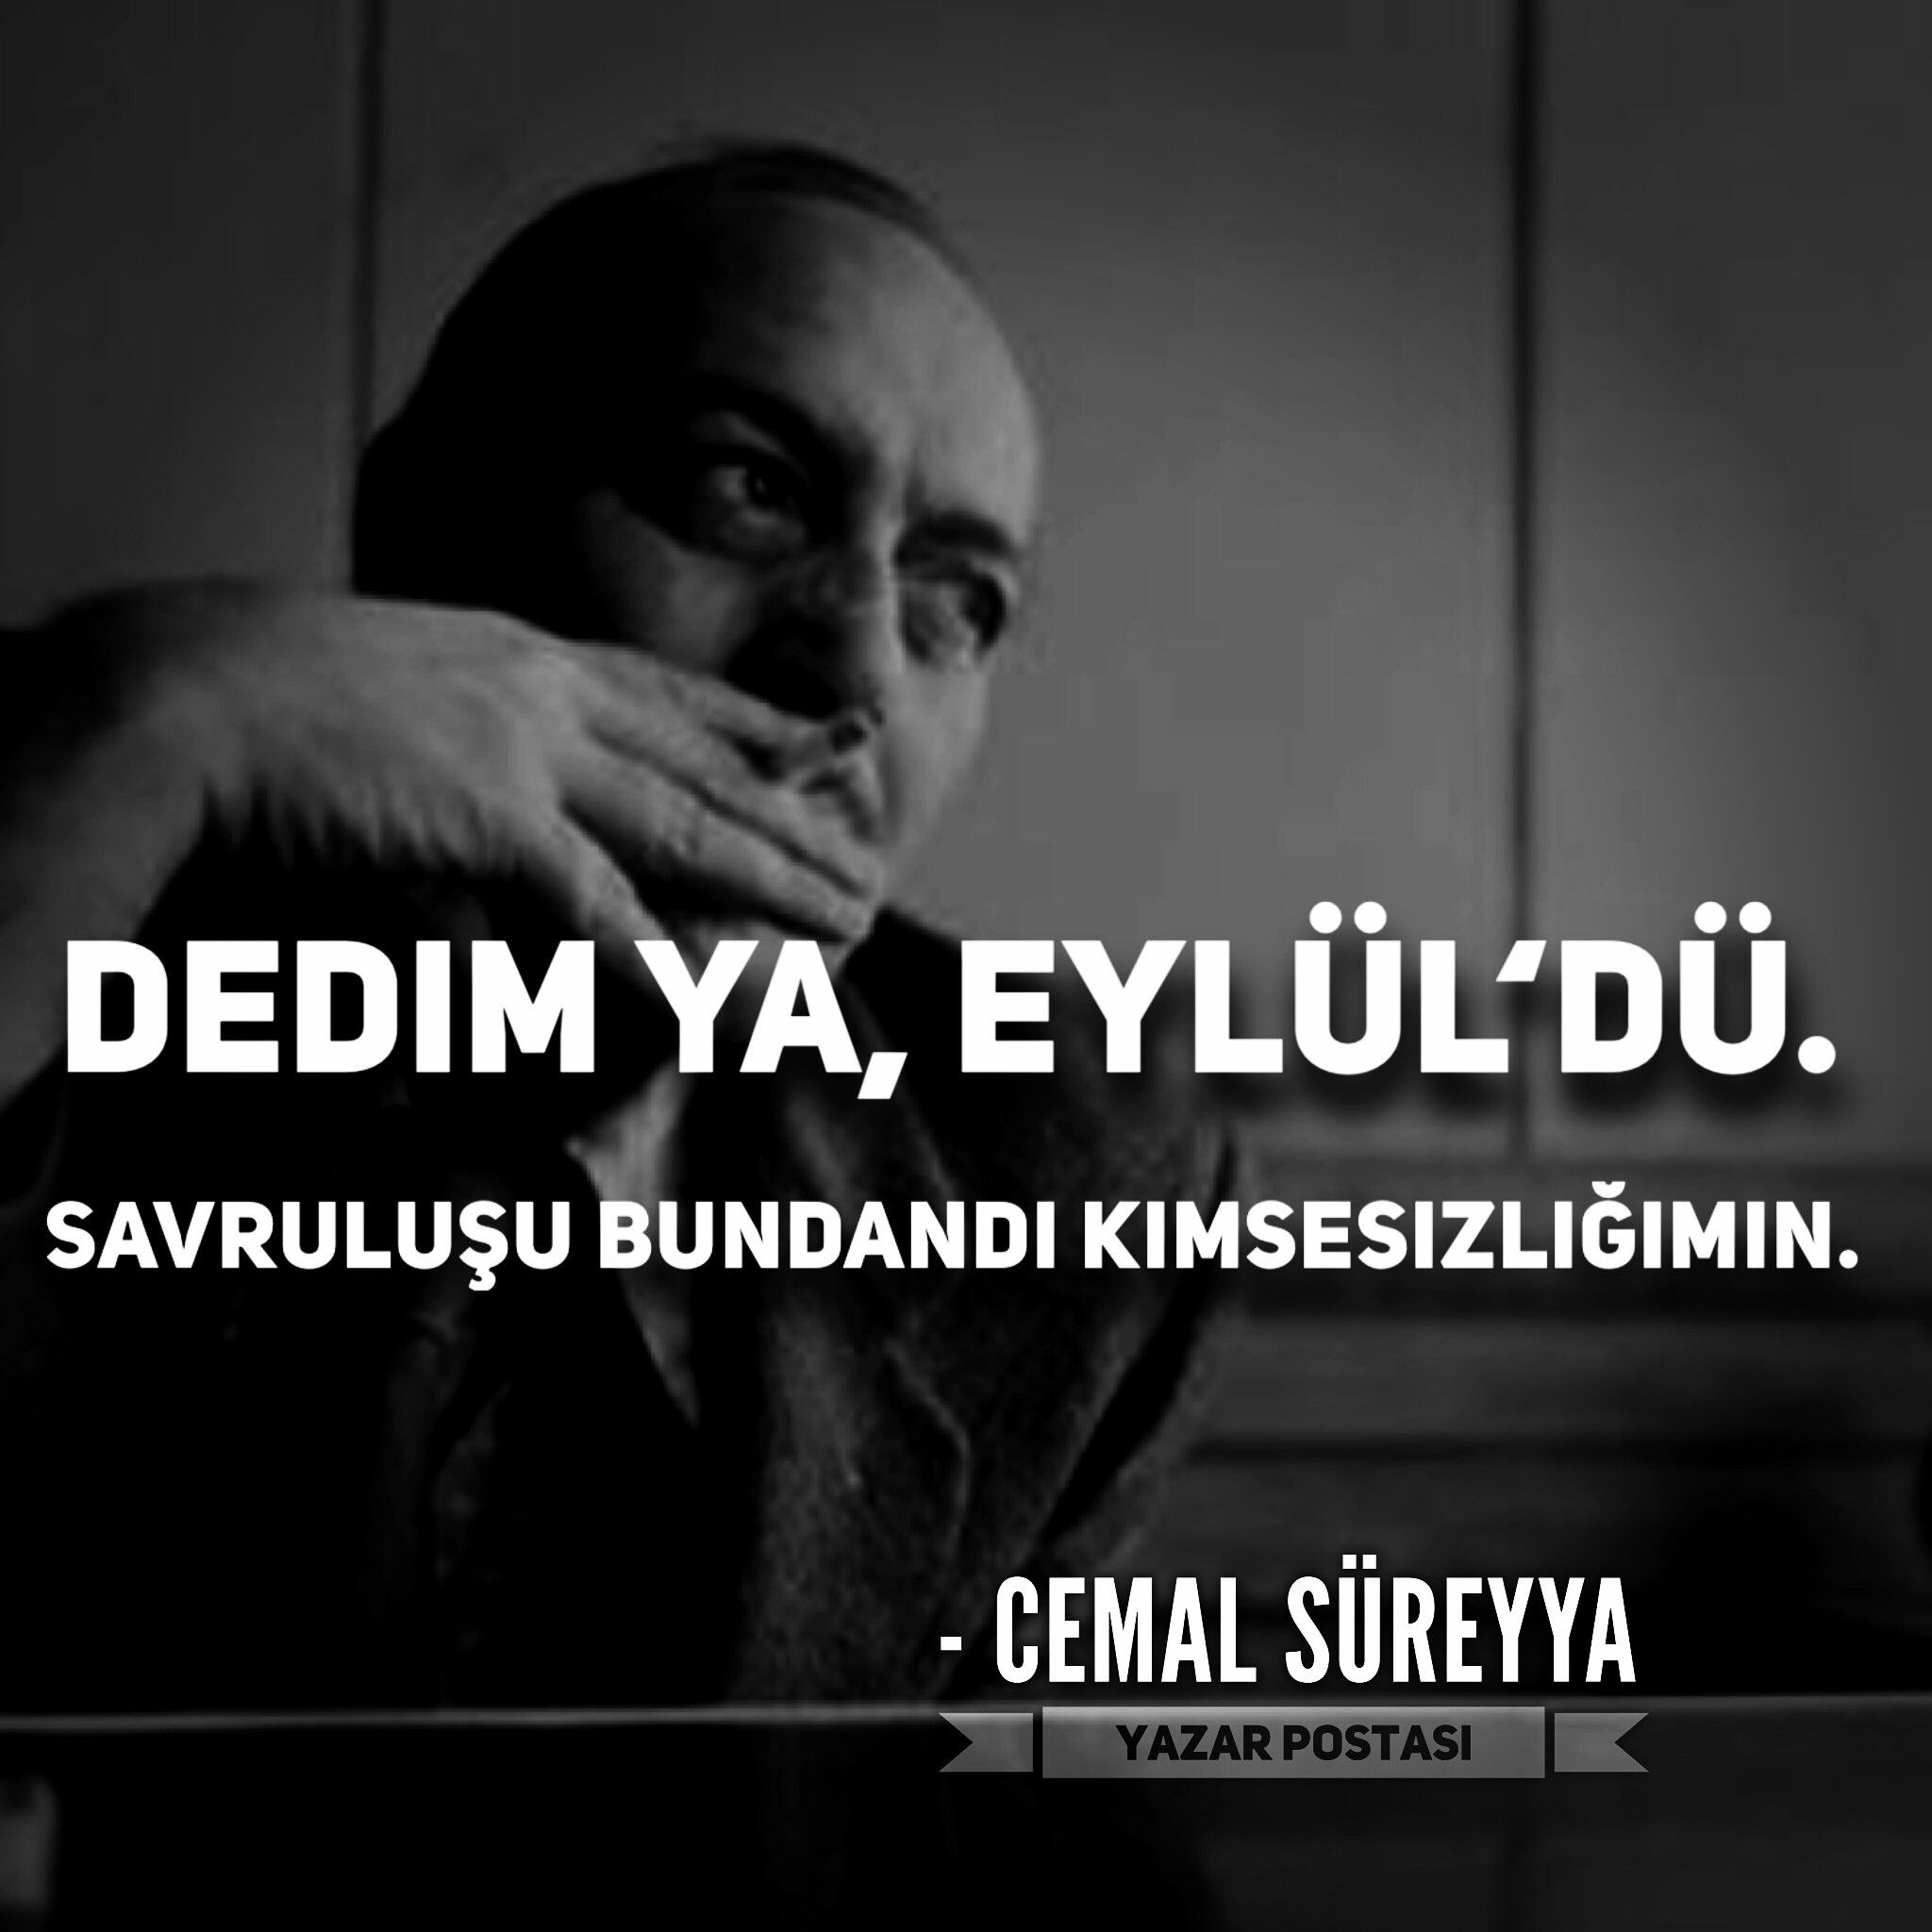 Nostalji Postası On Anlamlı Sözler True Words Quotes Ve Cool Words